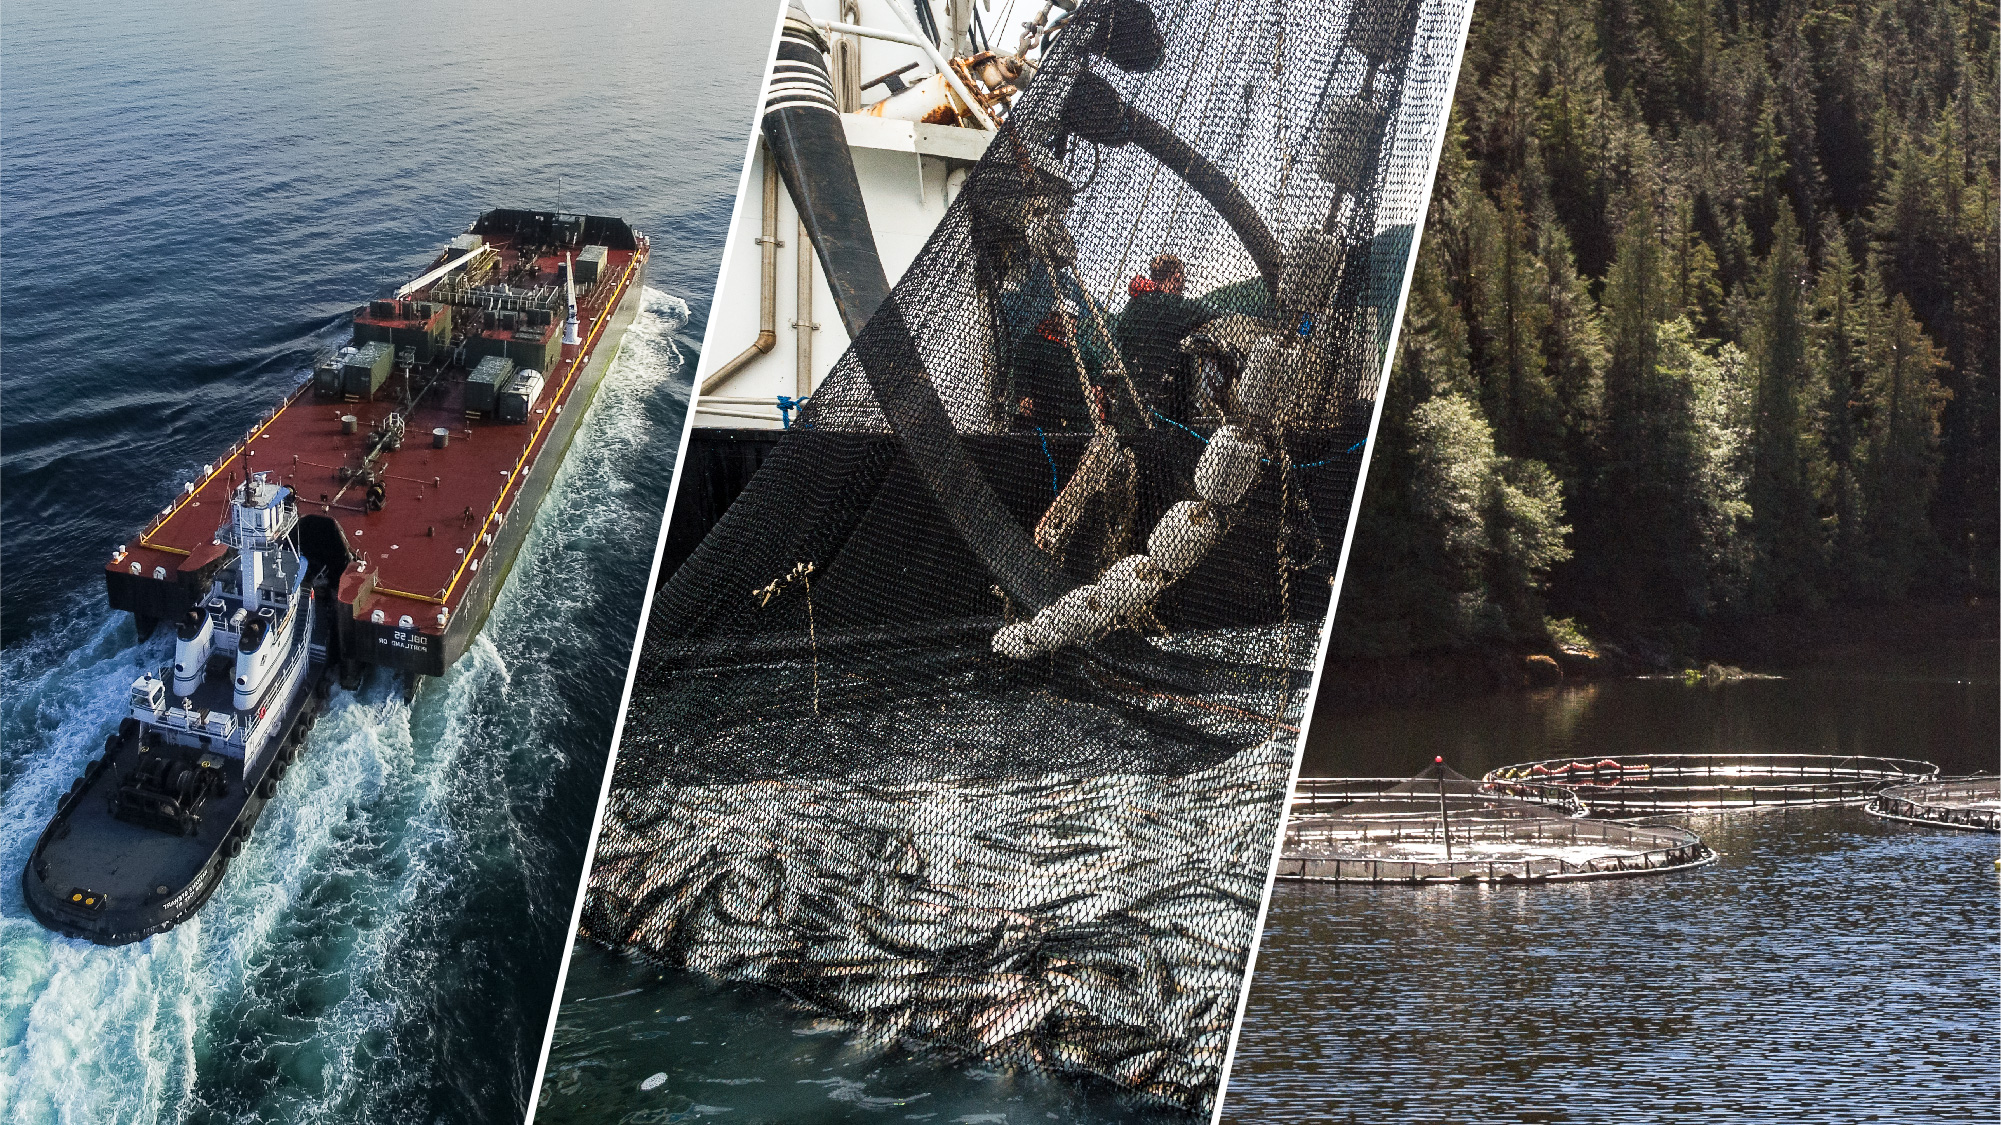 Industrial shipping   ,    fishing pressure    and    net pen salmon farms    all have an impact on the coastal ecosystem.